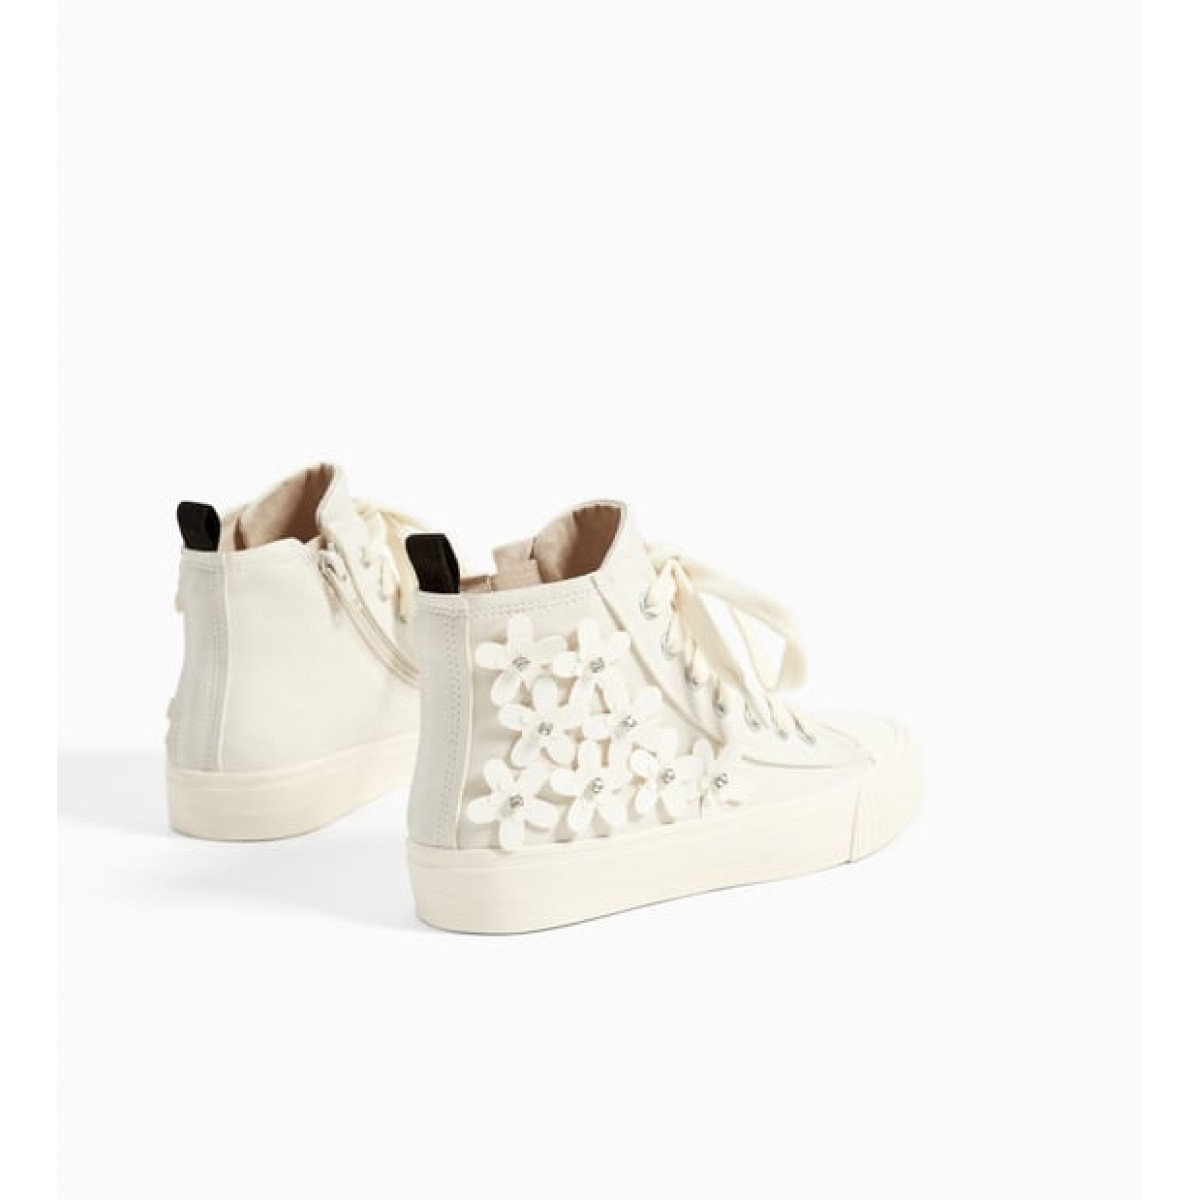 Zara High Top Sneakers With Flowers Detail